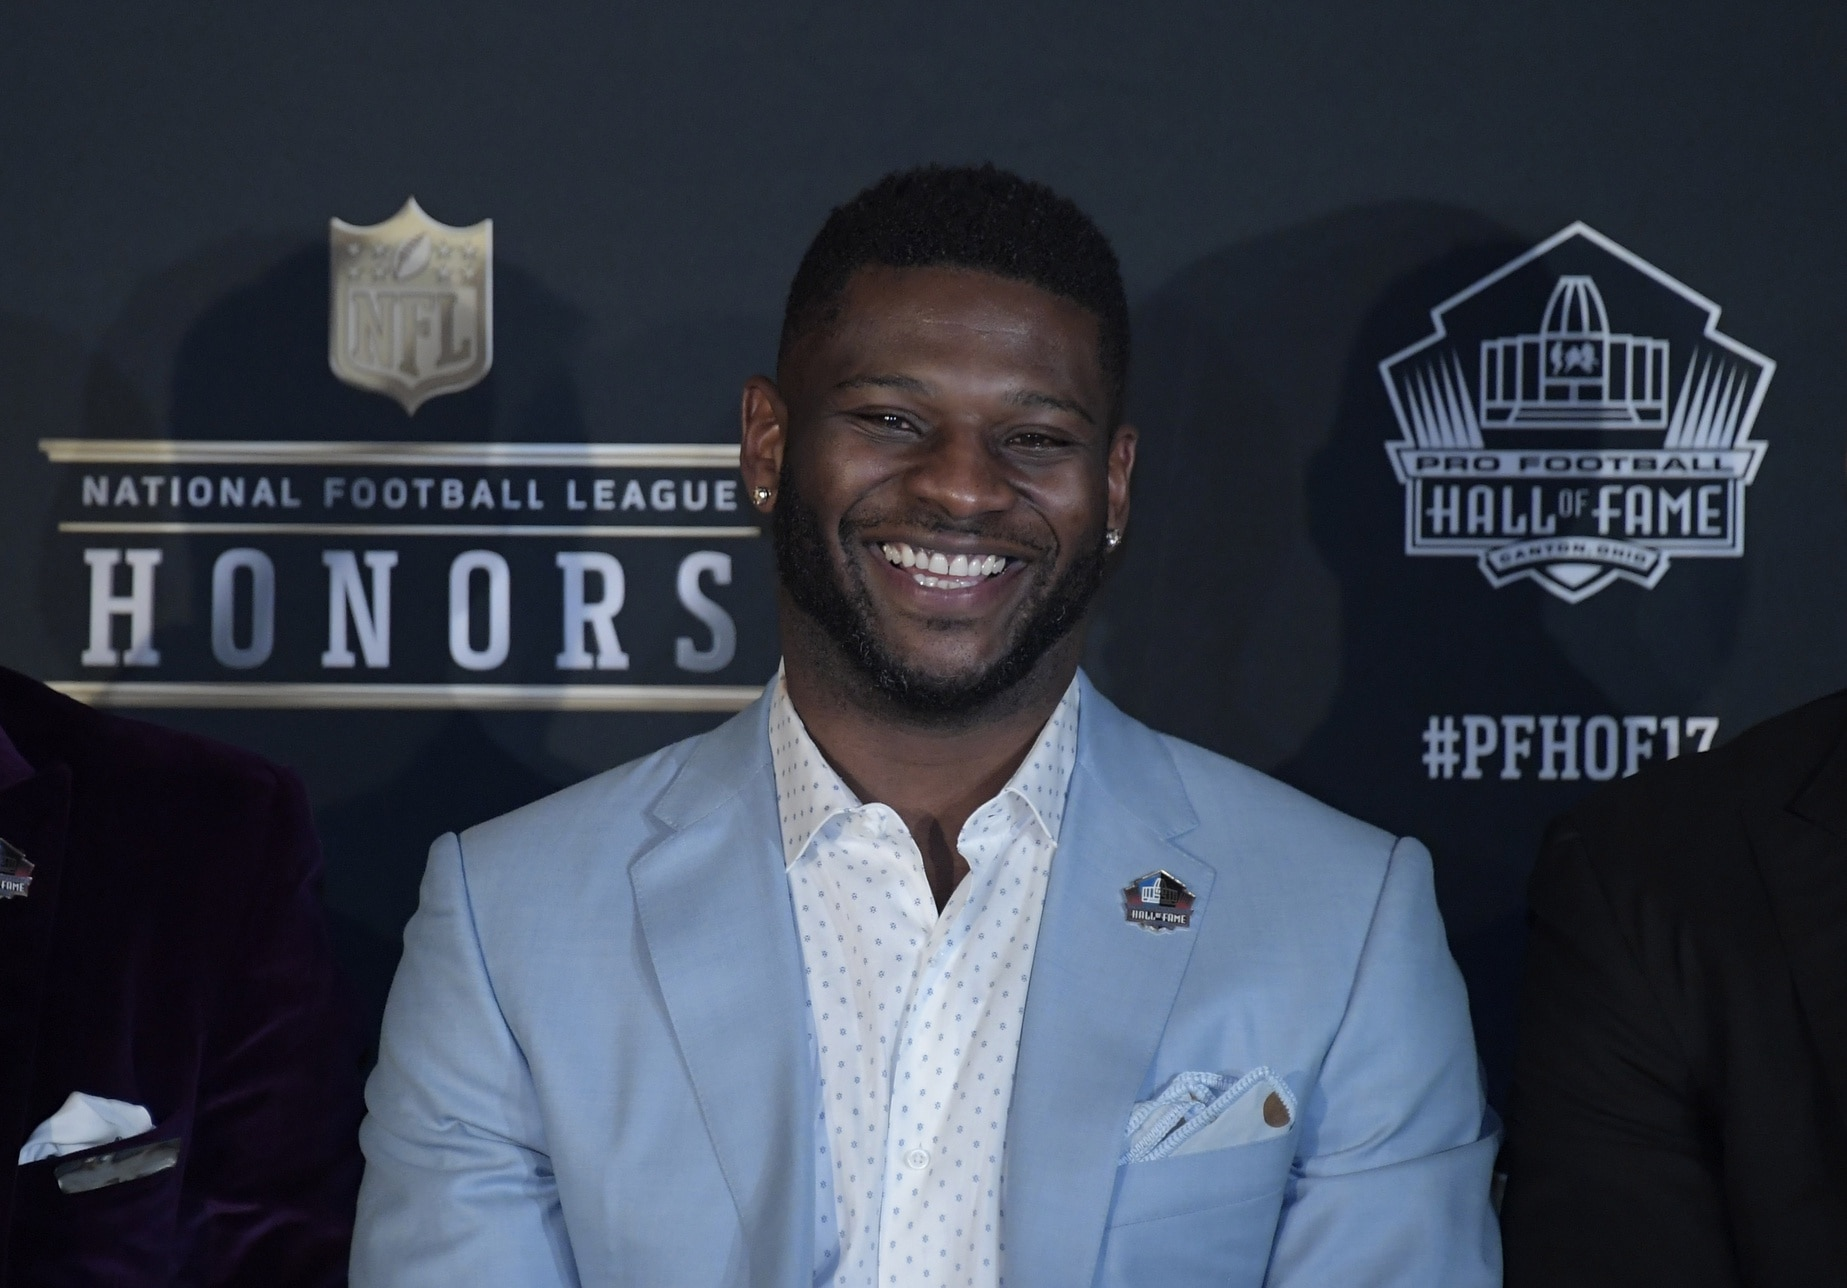 Caption: Feb 4, 2017; Houston, TX, USA; NFL former player LaDainian Tomlinson speaks with the media after being elected into the NFL Hall of Fame during the 6th Annual NFL Honors at Wortham Theater. Mandatory Credit: Kirby Lee-USA TODAY Sports